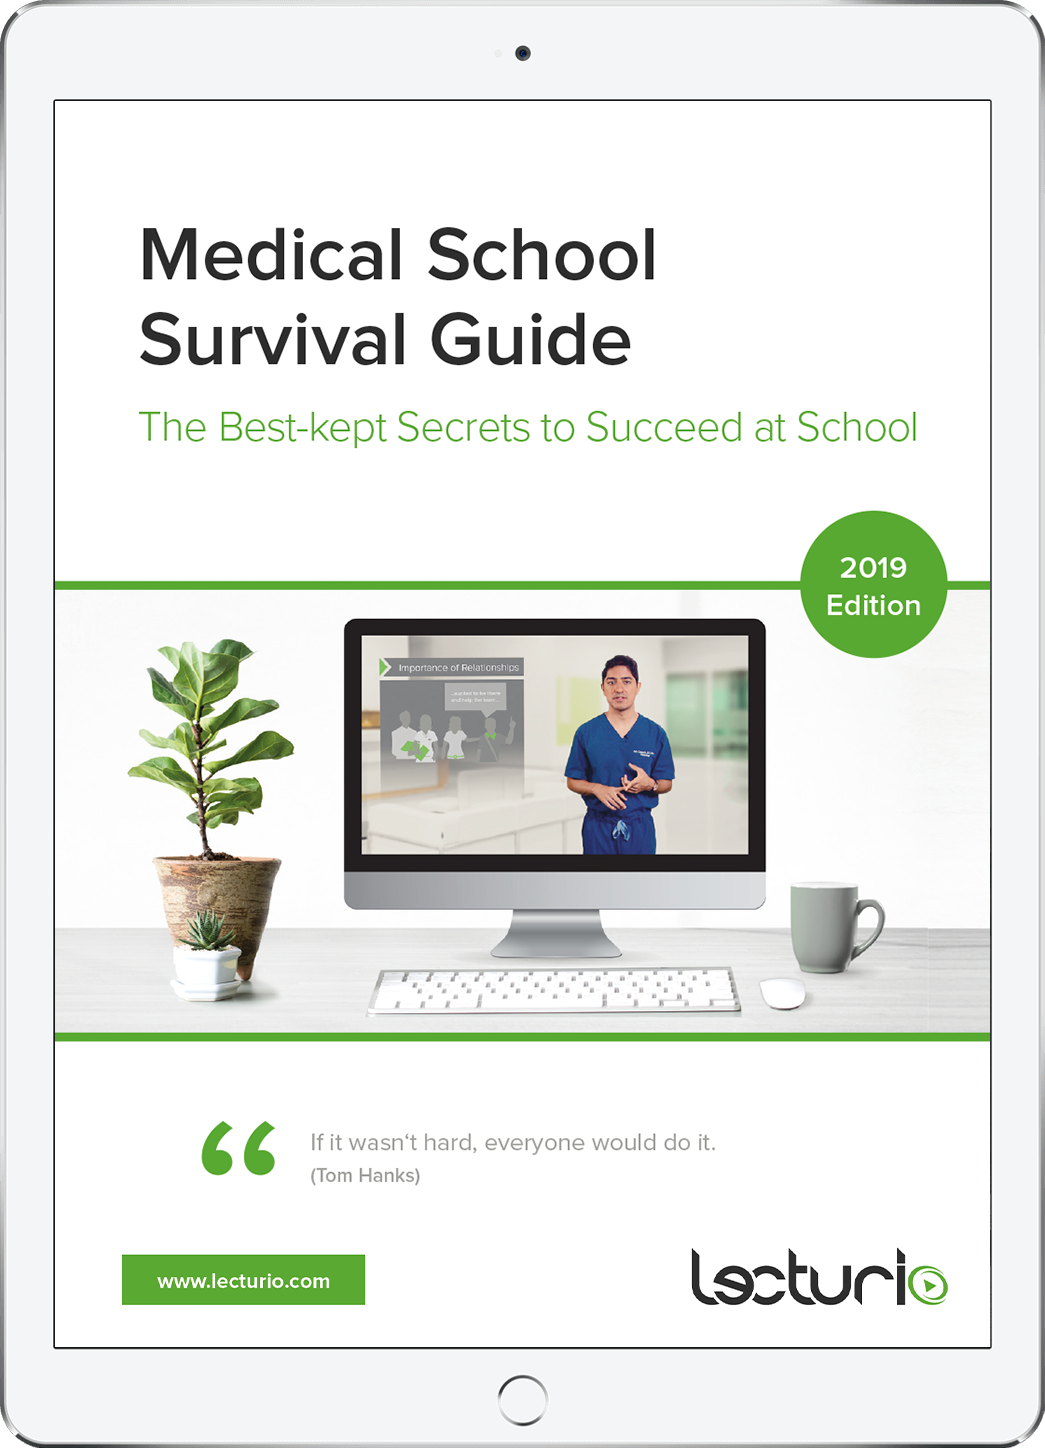 How to Survive Med School: Lecturio's Medical School